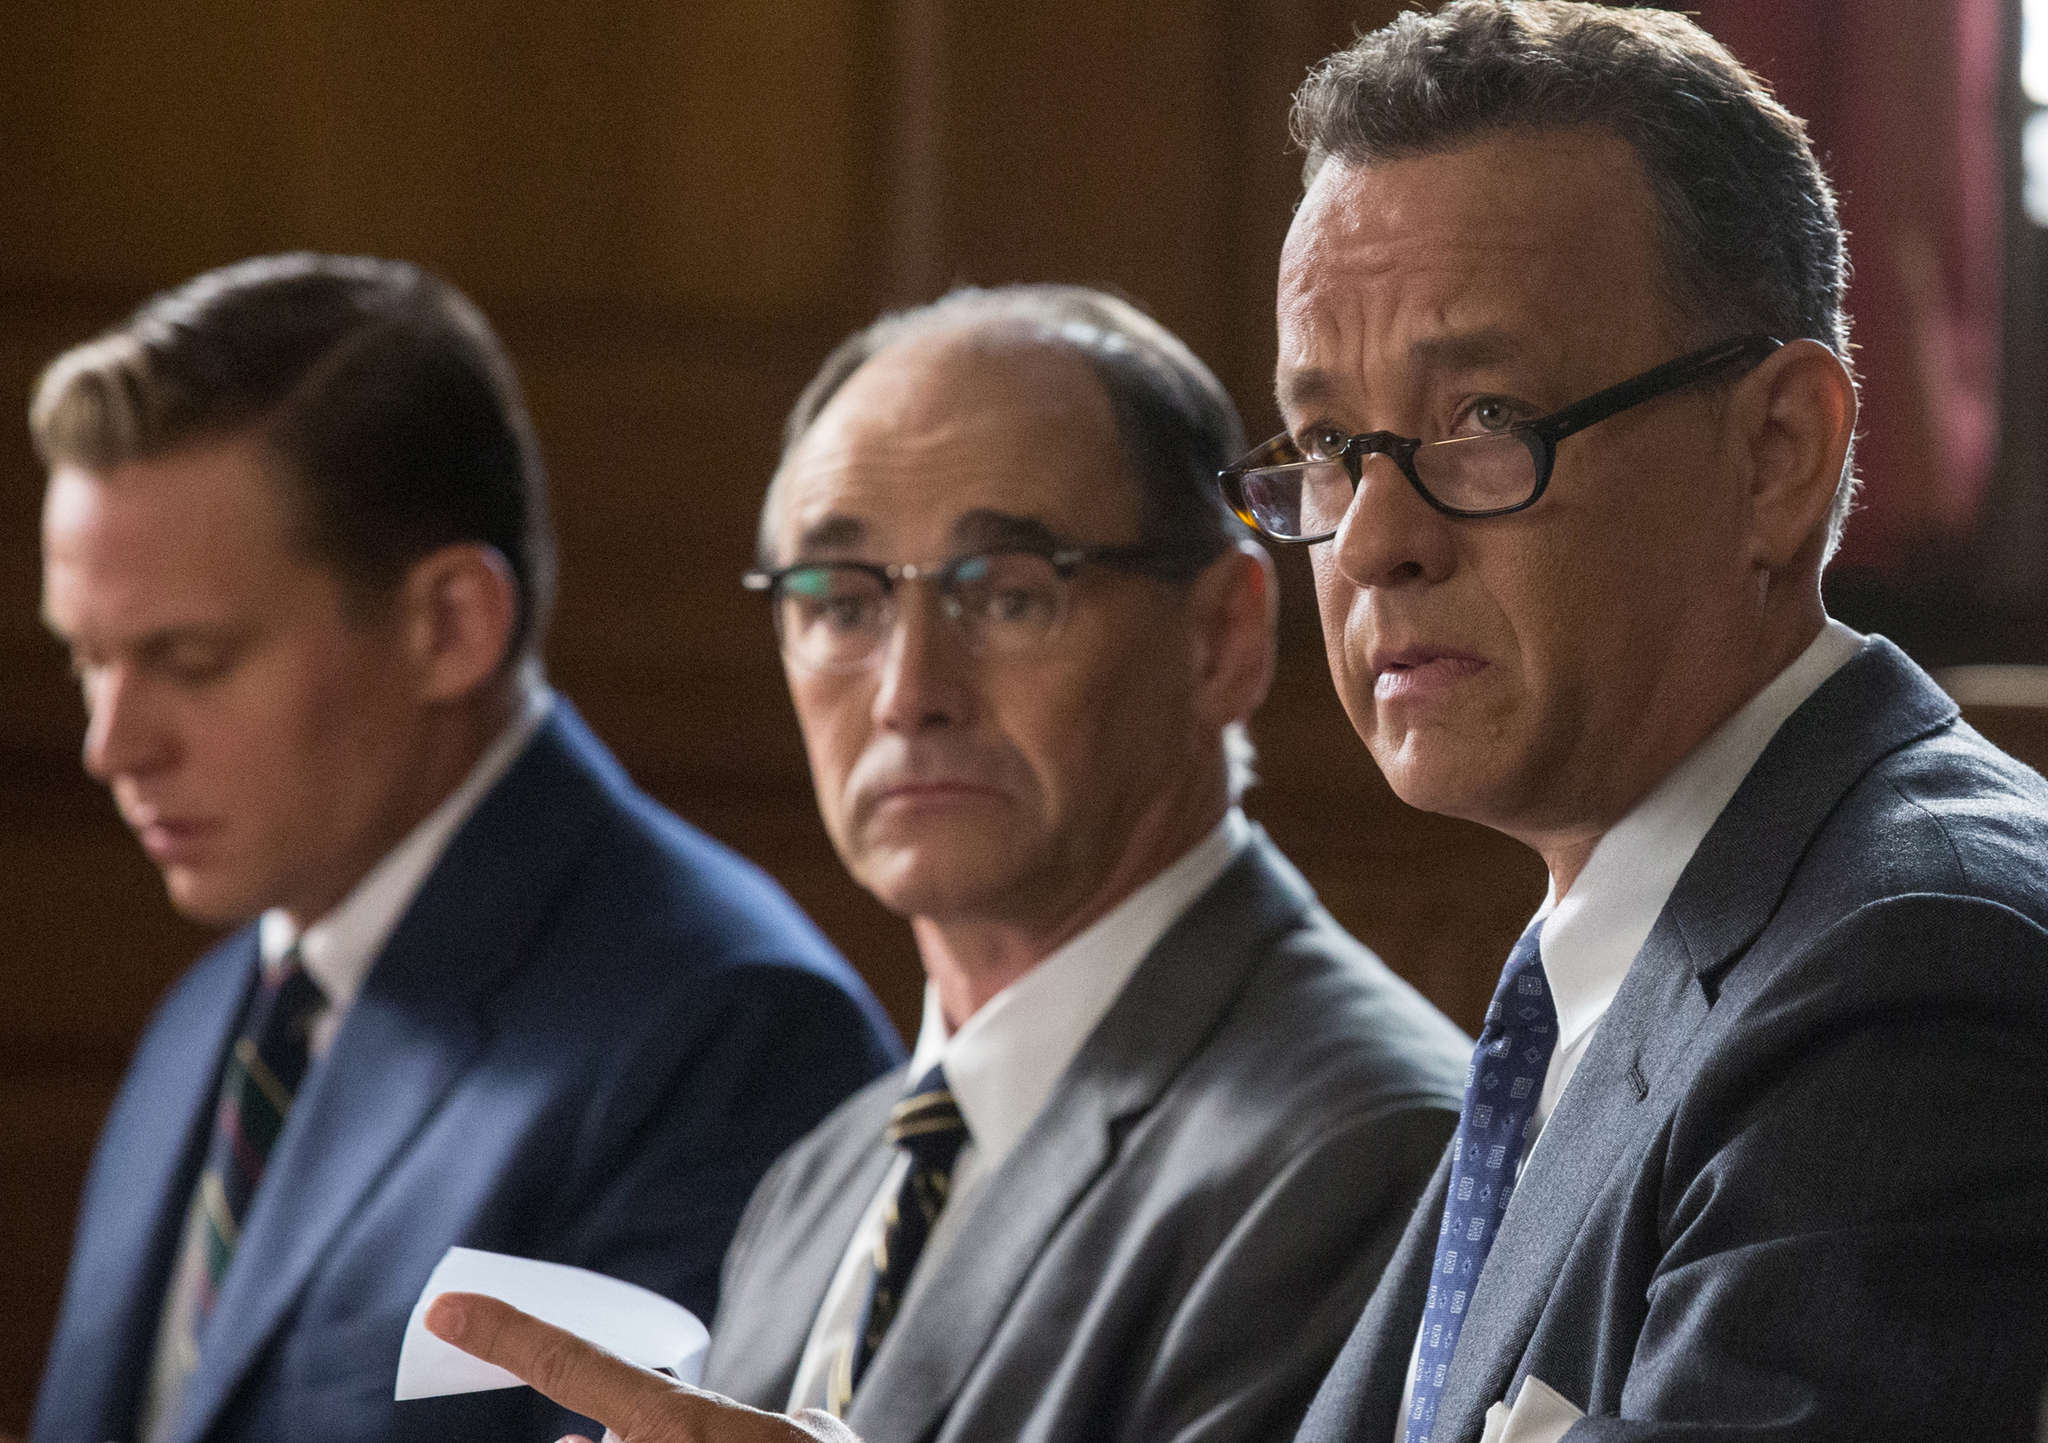 """Bridge of Spies,"" with (from left) Billy Magnusson, Mark Rylance, and Tom Hanks."